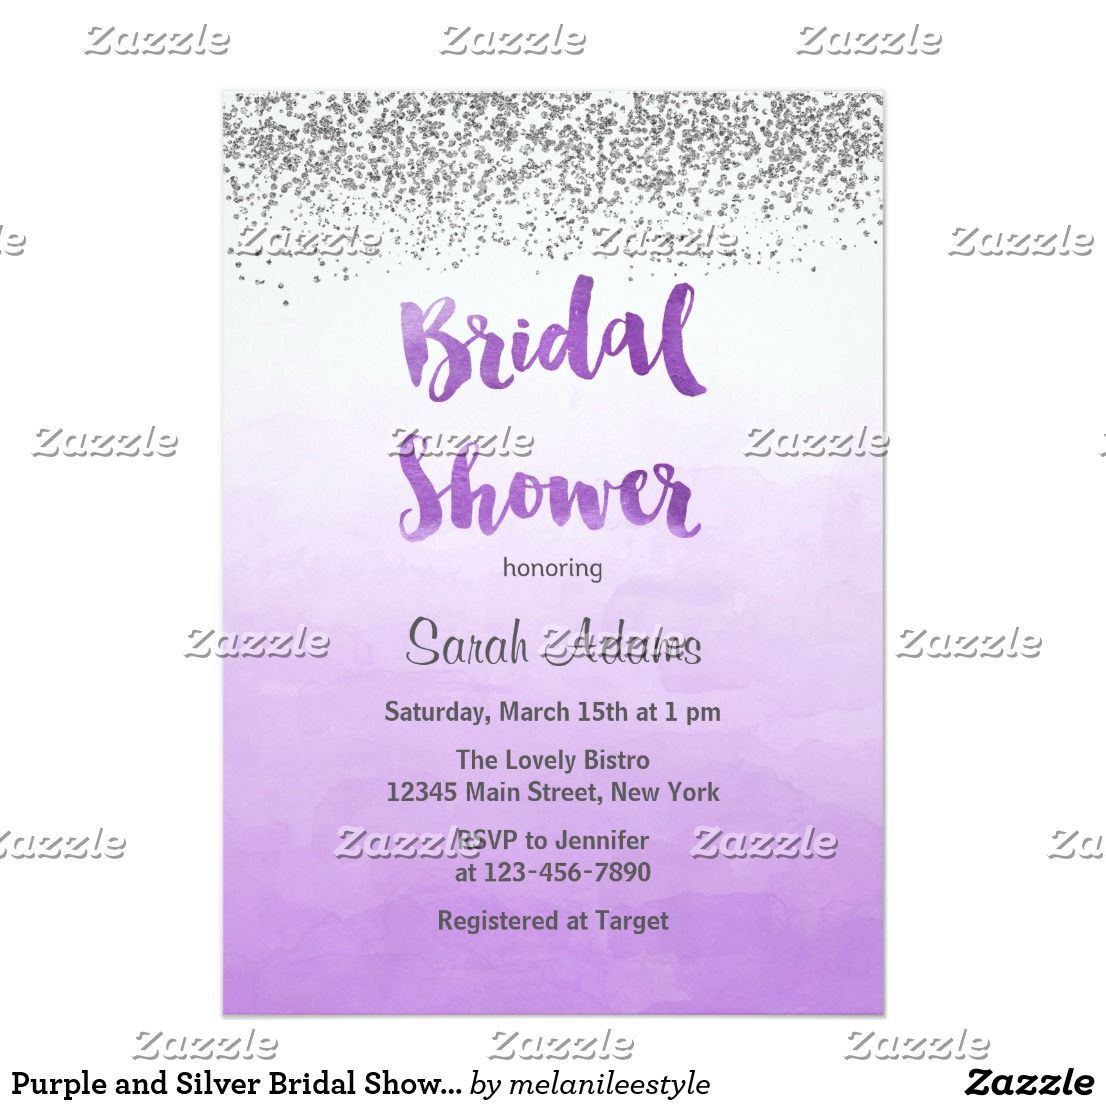 purple and silver bridal shower invitation bridal shower invitation with silver glitter look design and ombre